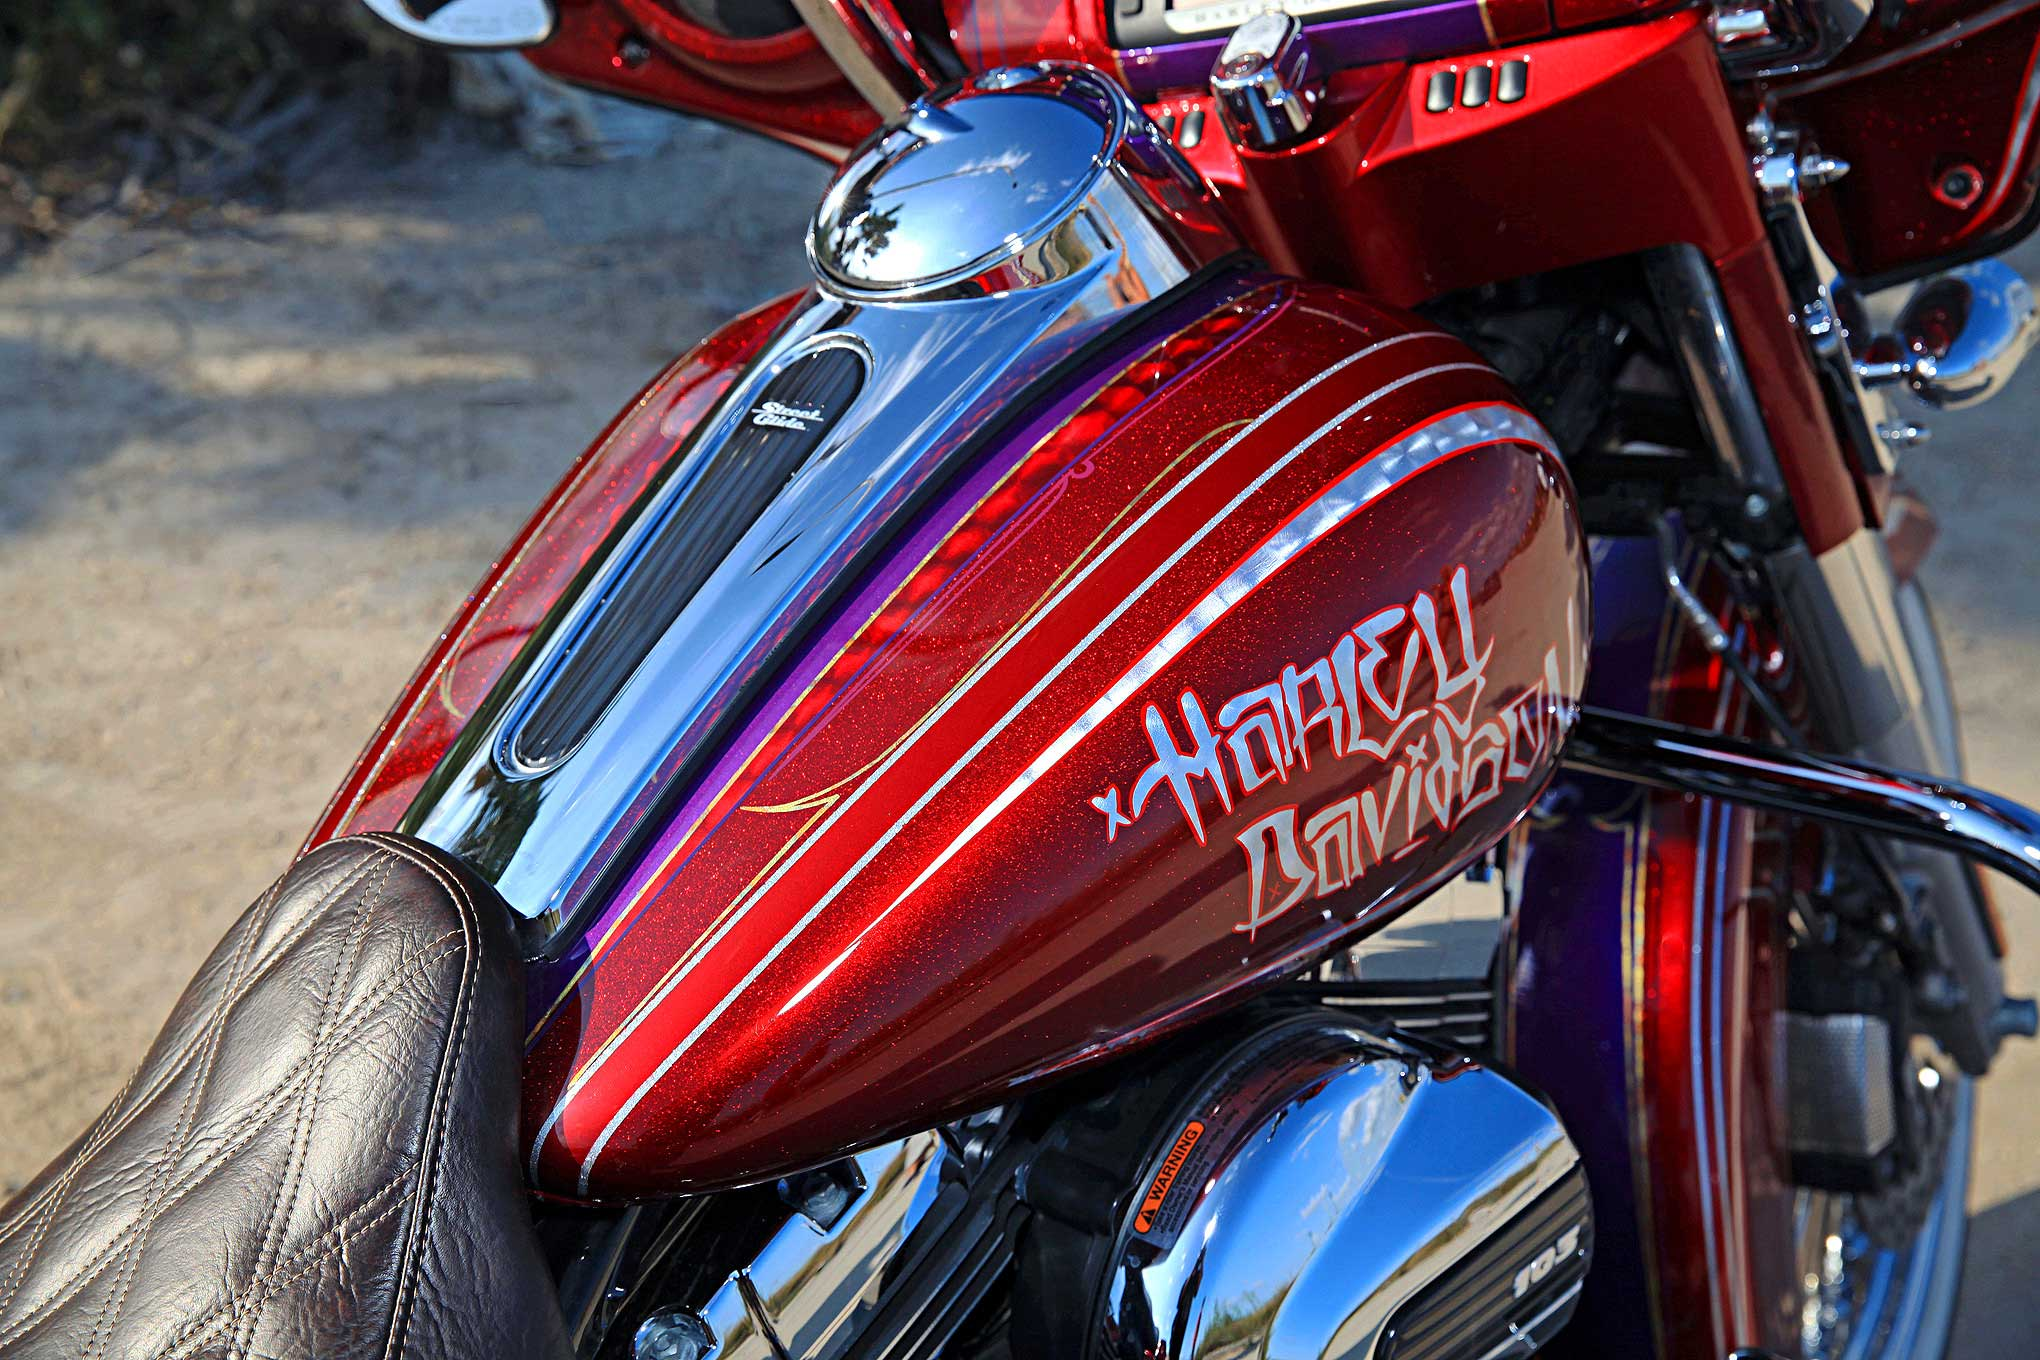 2015 Harley-Davidson Street Glide - A Therapeutic Build